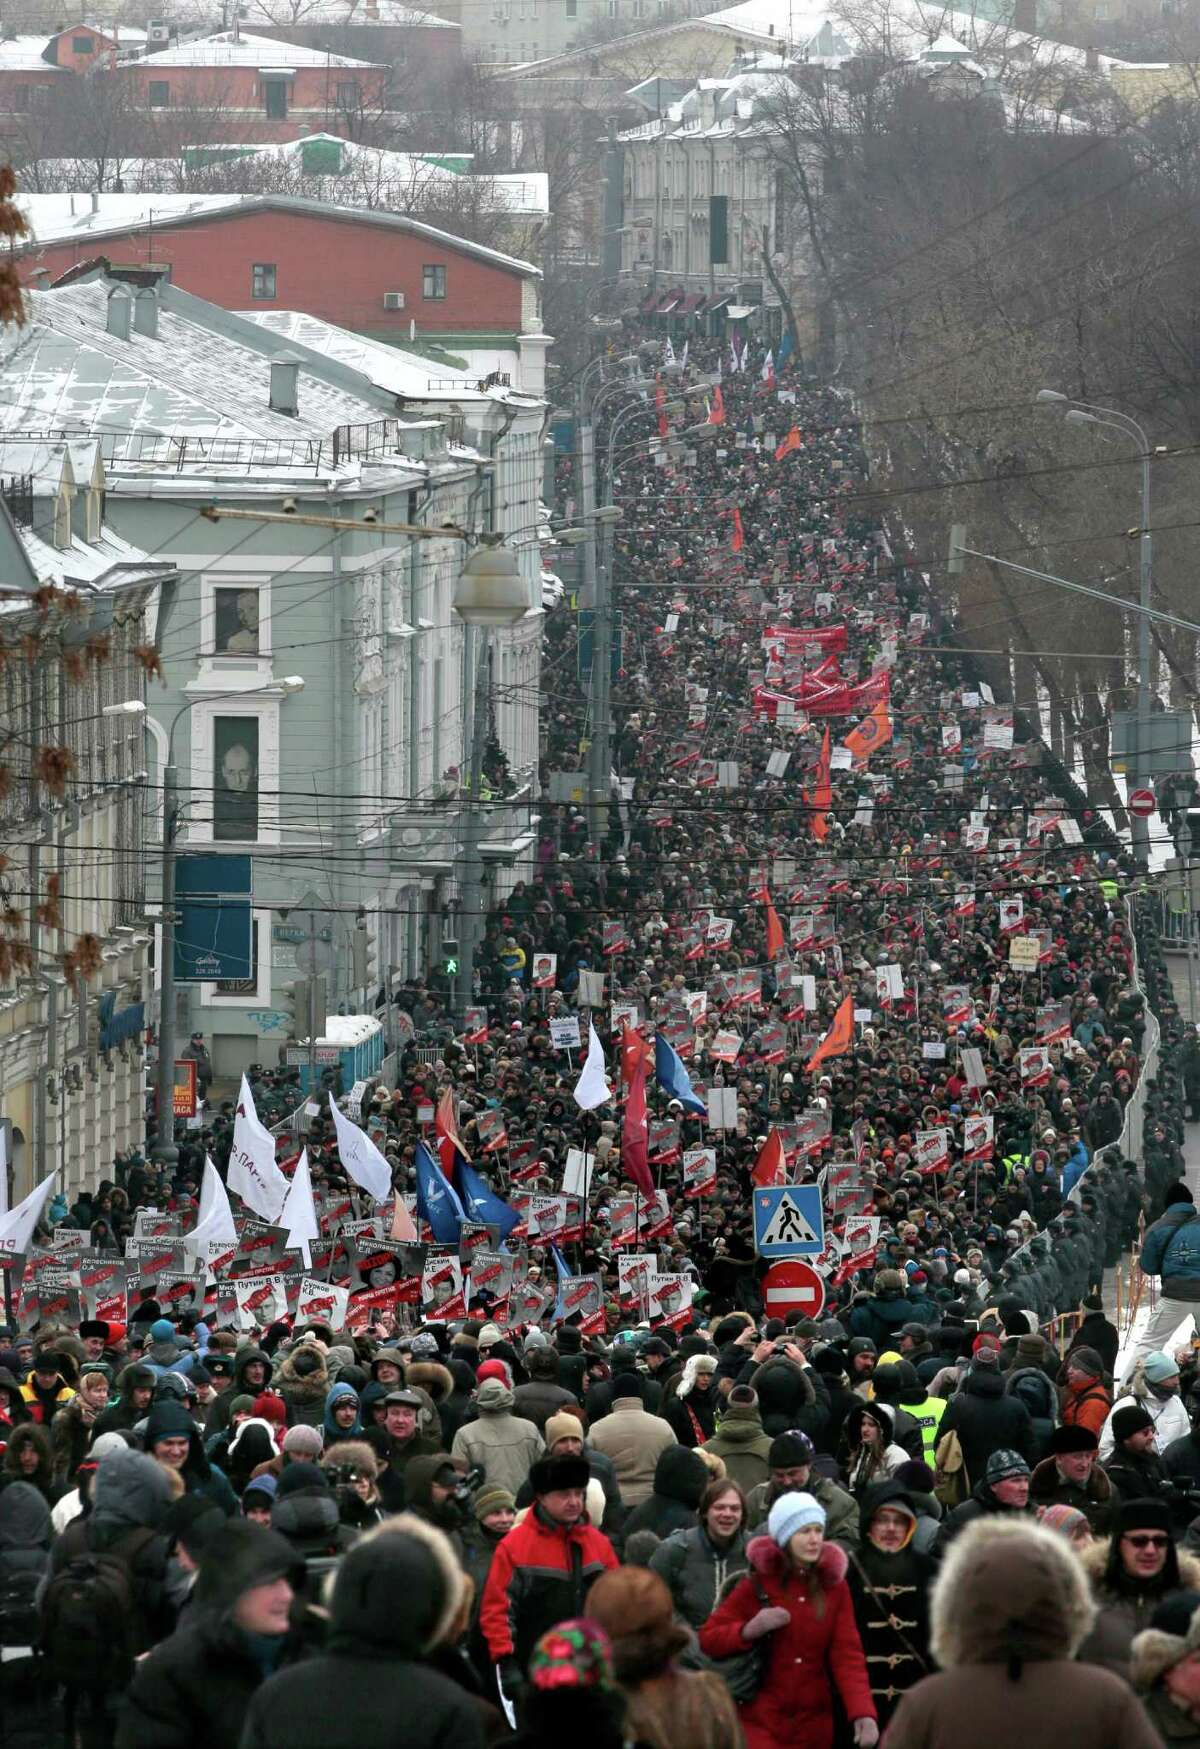 People march during a protest rally in Moscow, Russia, on Sunday. Thousands of people are gathering in central Moscow to protest against Russia's new law banning Americans from adopting Russian children. They carry posters of President Vladimir Putin and members of Russia's parliament who overwhelmingly voted for the law last month. The posters have the word